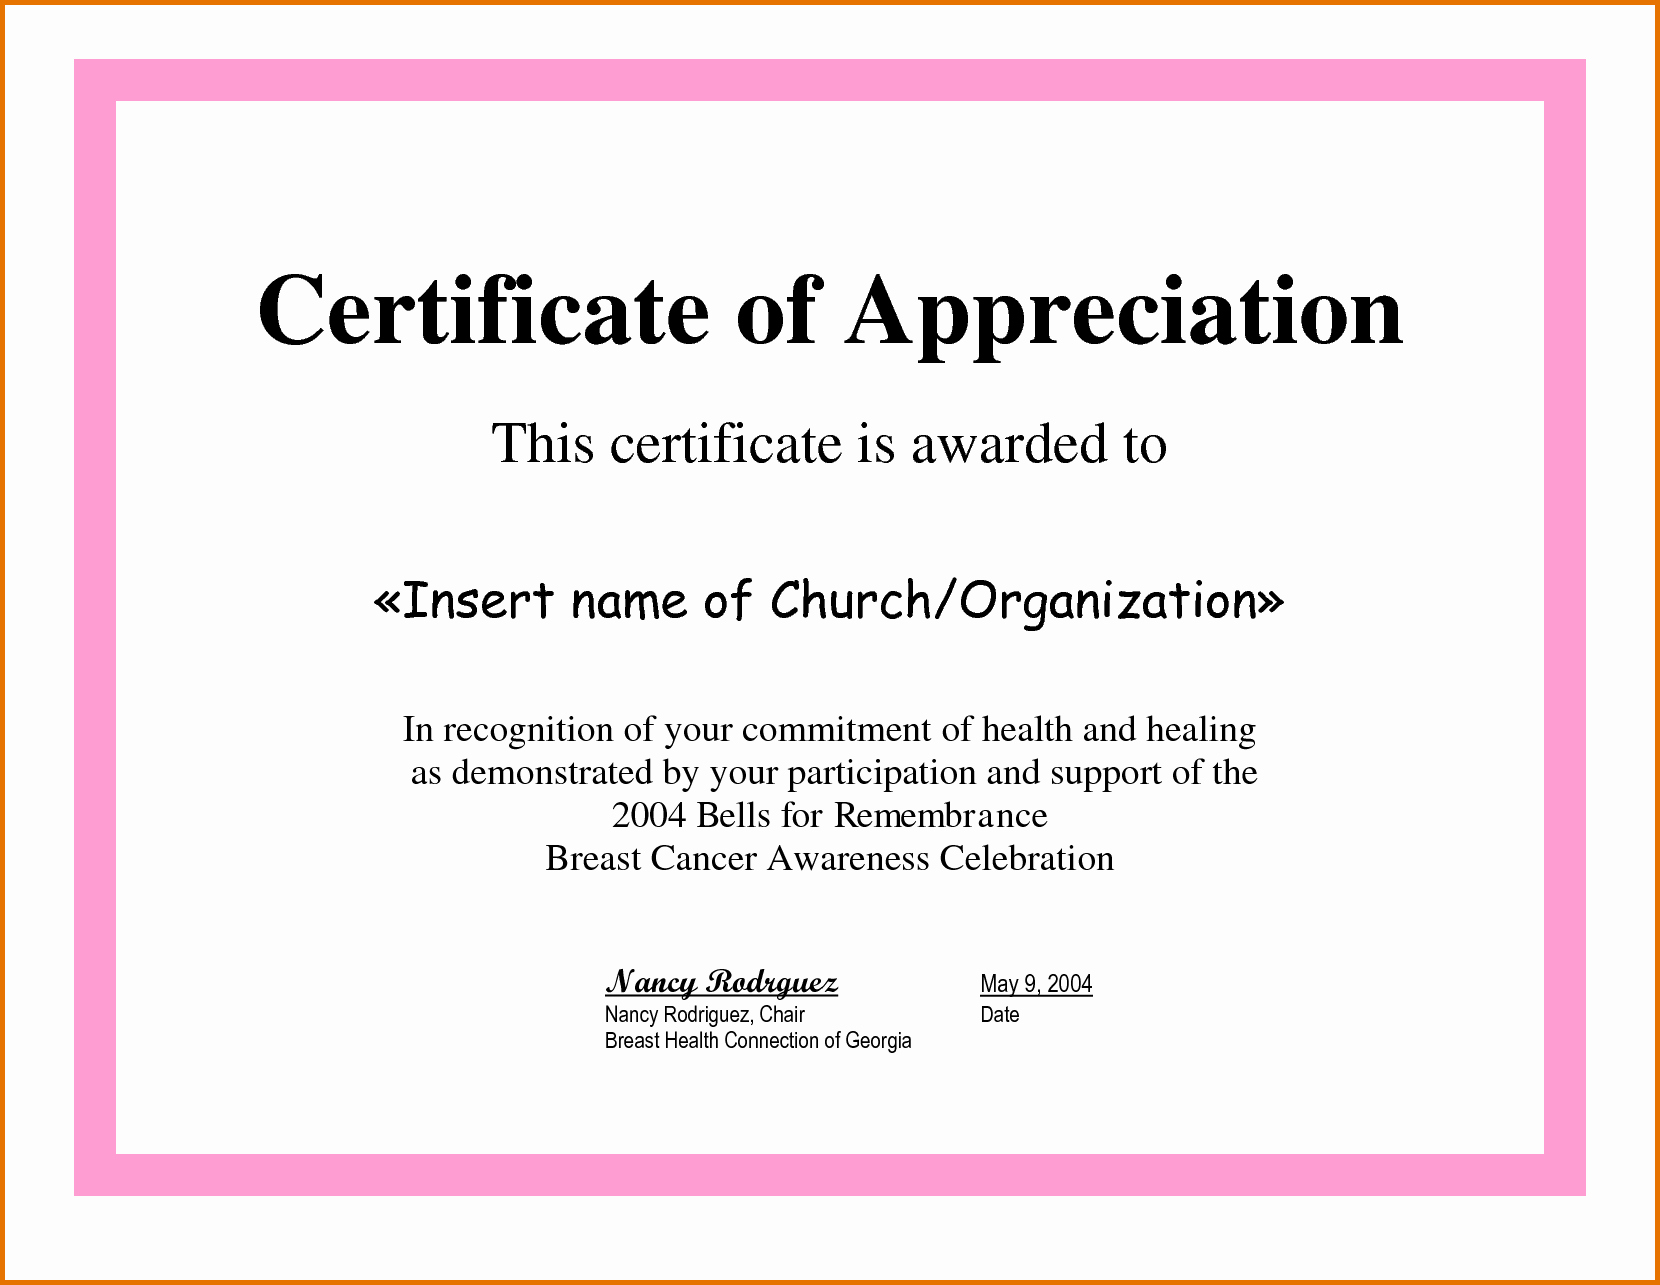 Words for Certificate Of Appreciation Awesome Certificate Of Appreciation Samplesreference Letters Words